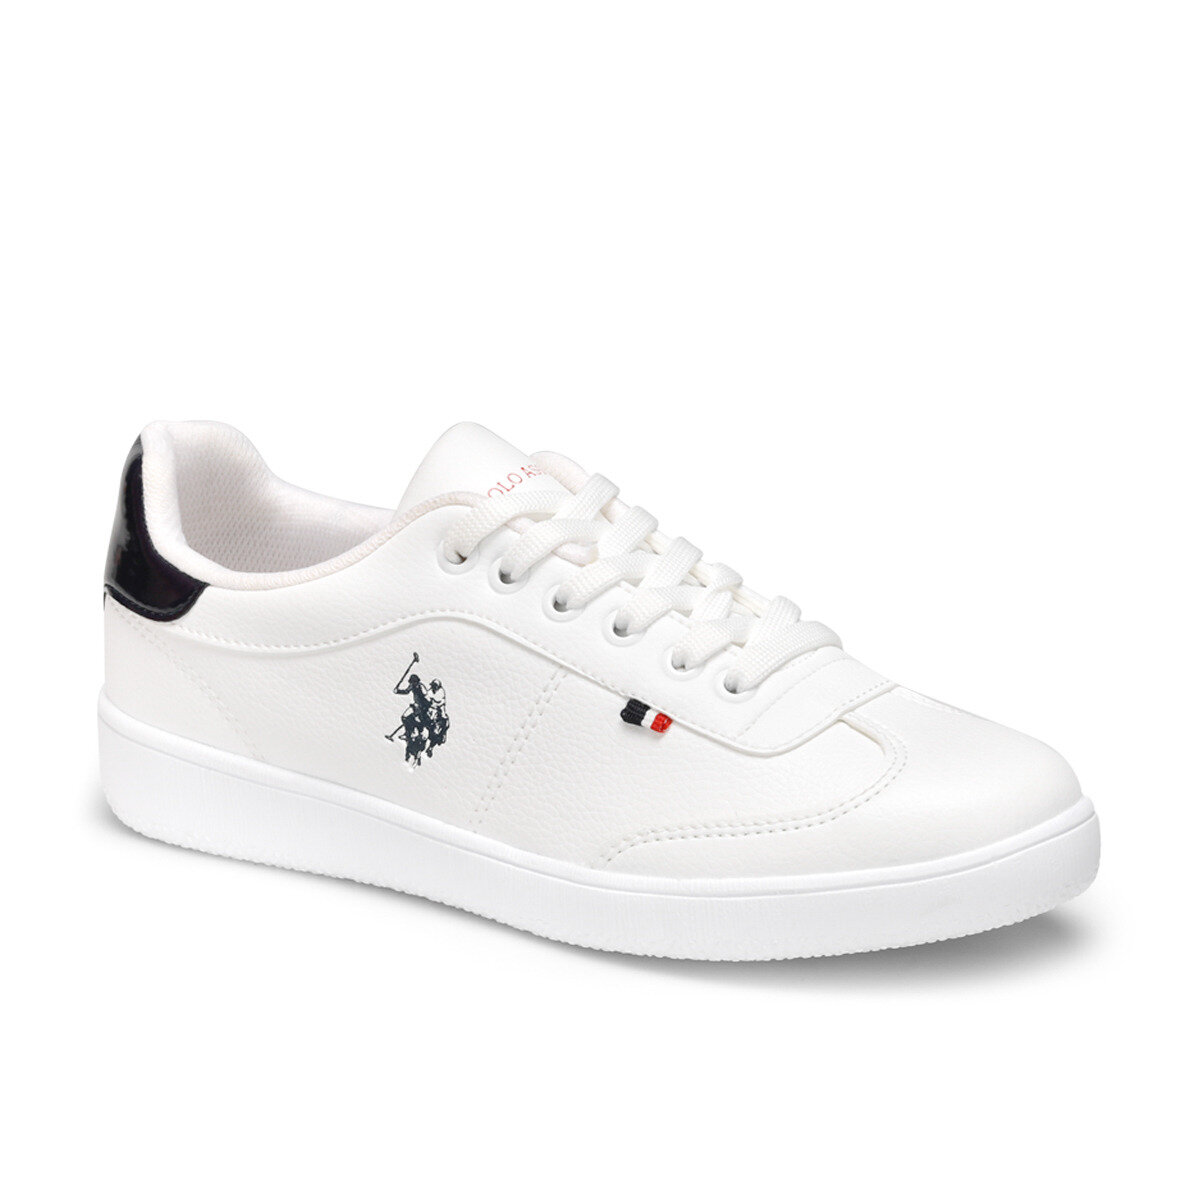 FLO SOMMER Navy Blue Women 'S Sneaker Shoes U.S. POLO ASSN.